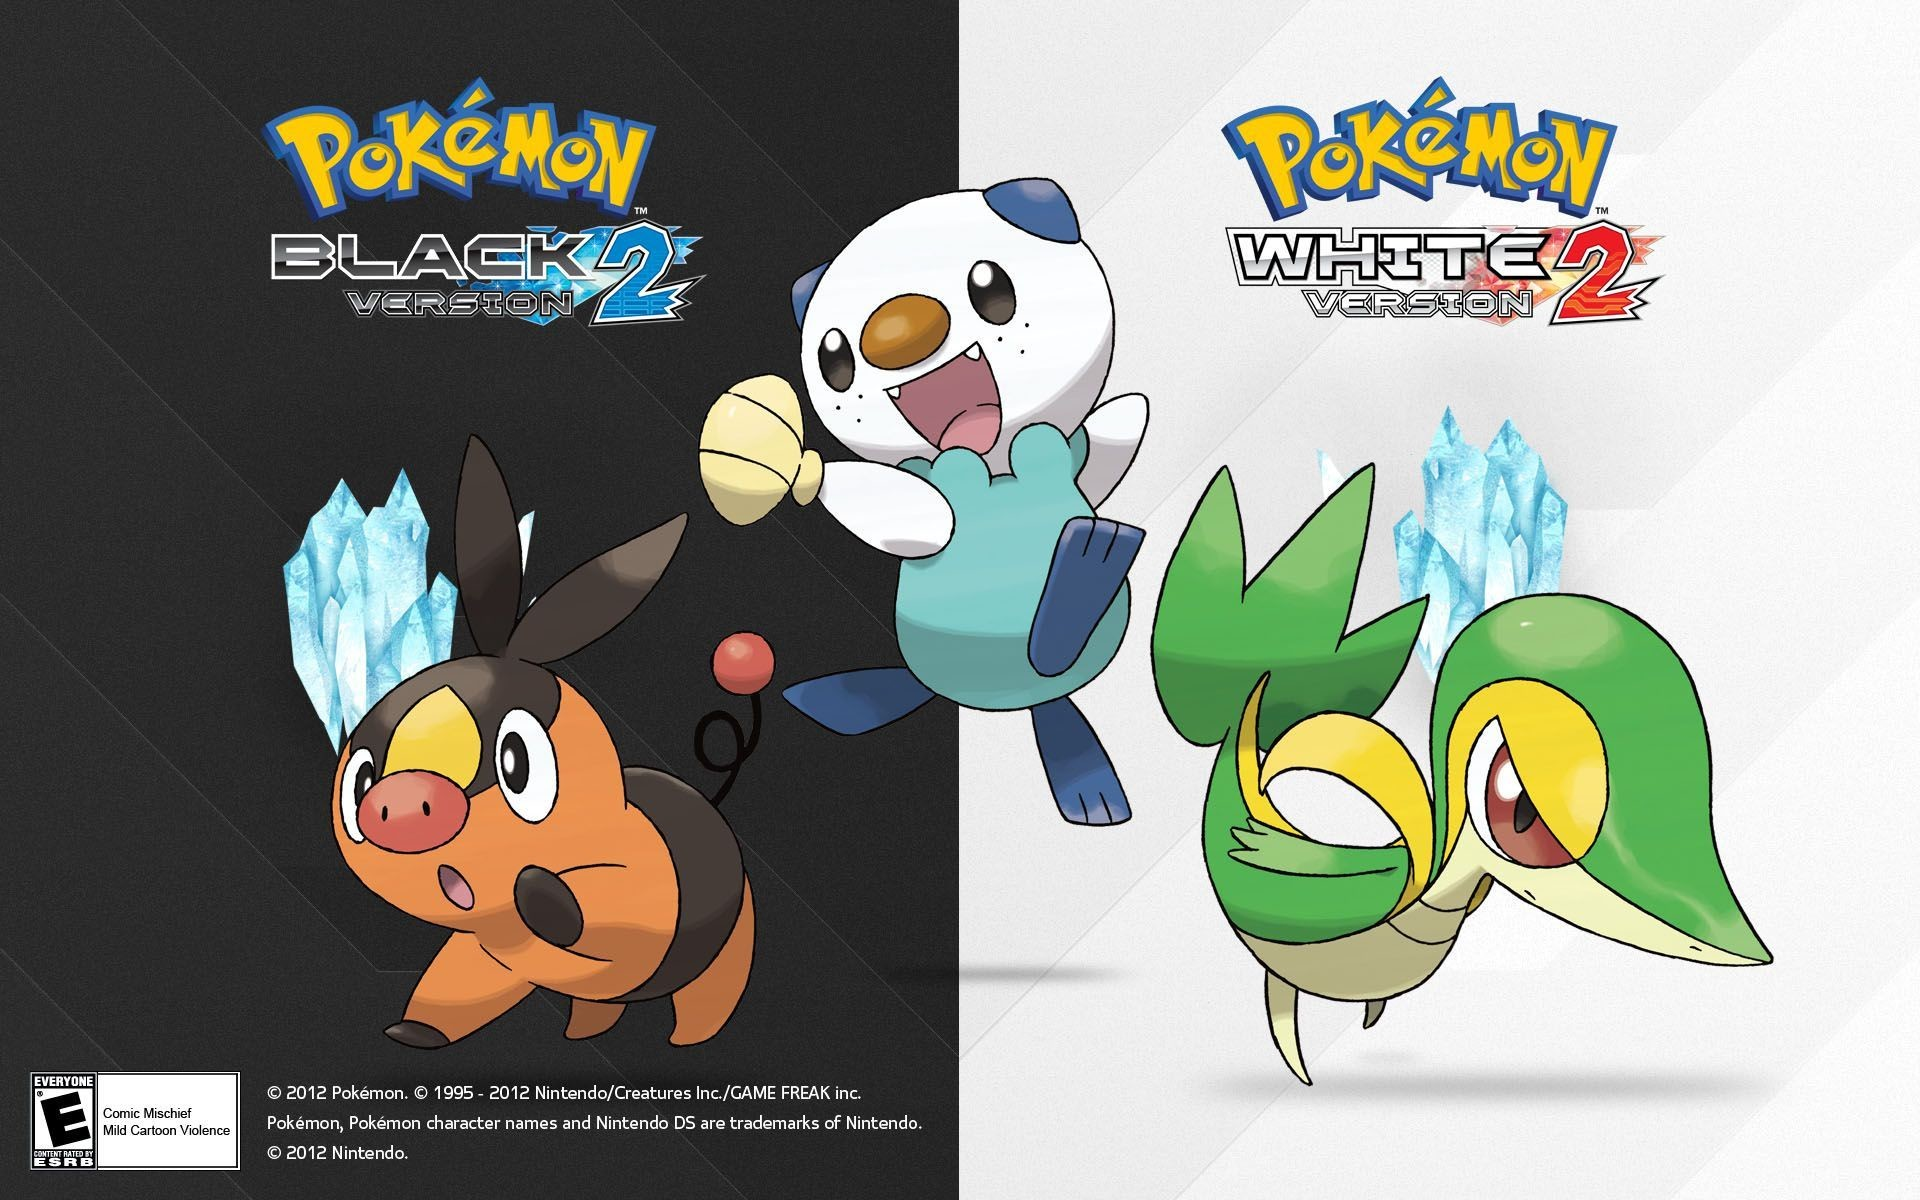 Pokemon Black and White Wallpaper 82 images